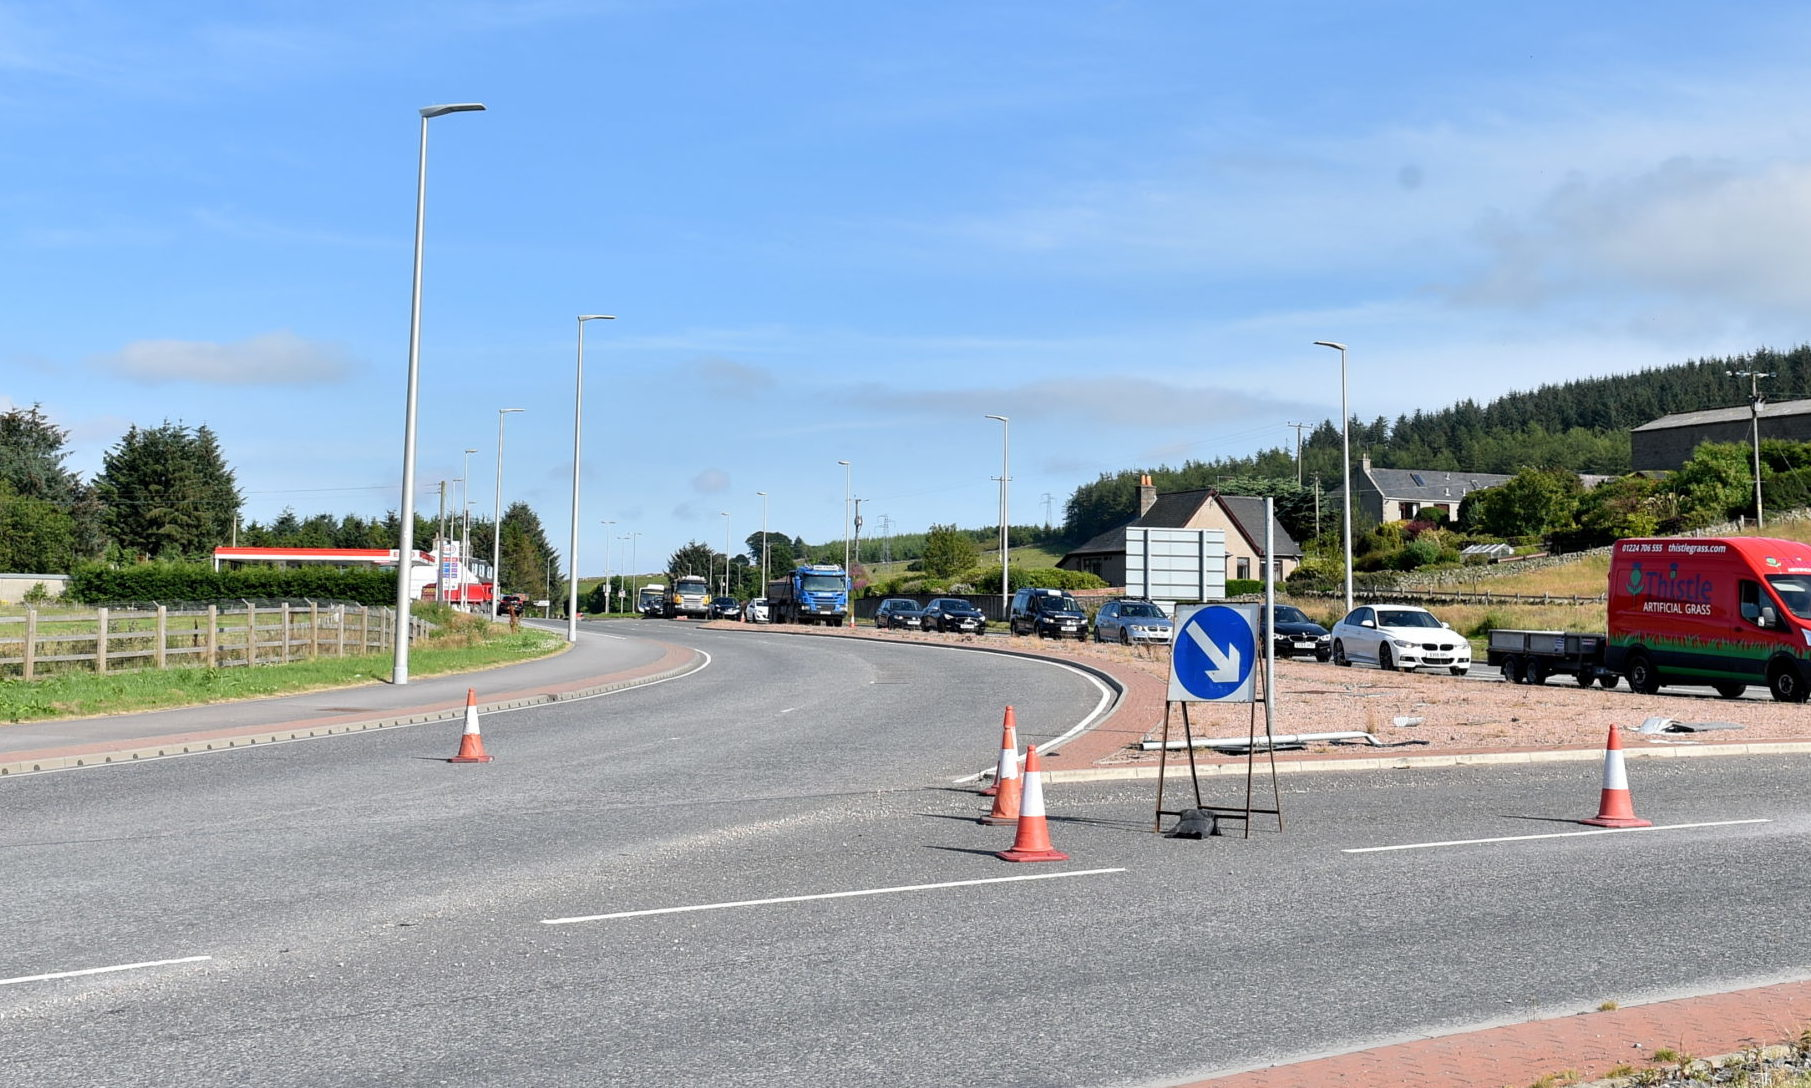 The Westhill / Kingswells roundabout connecting to the AWPR